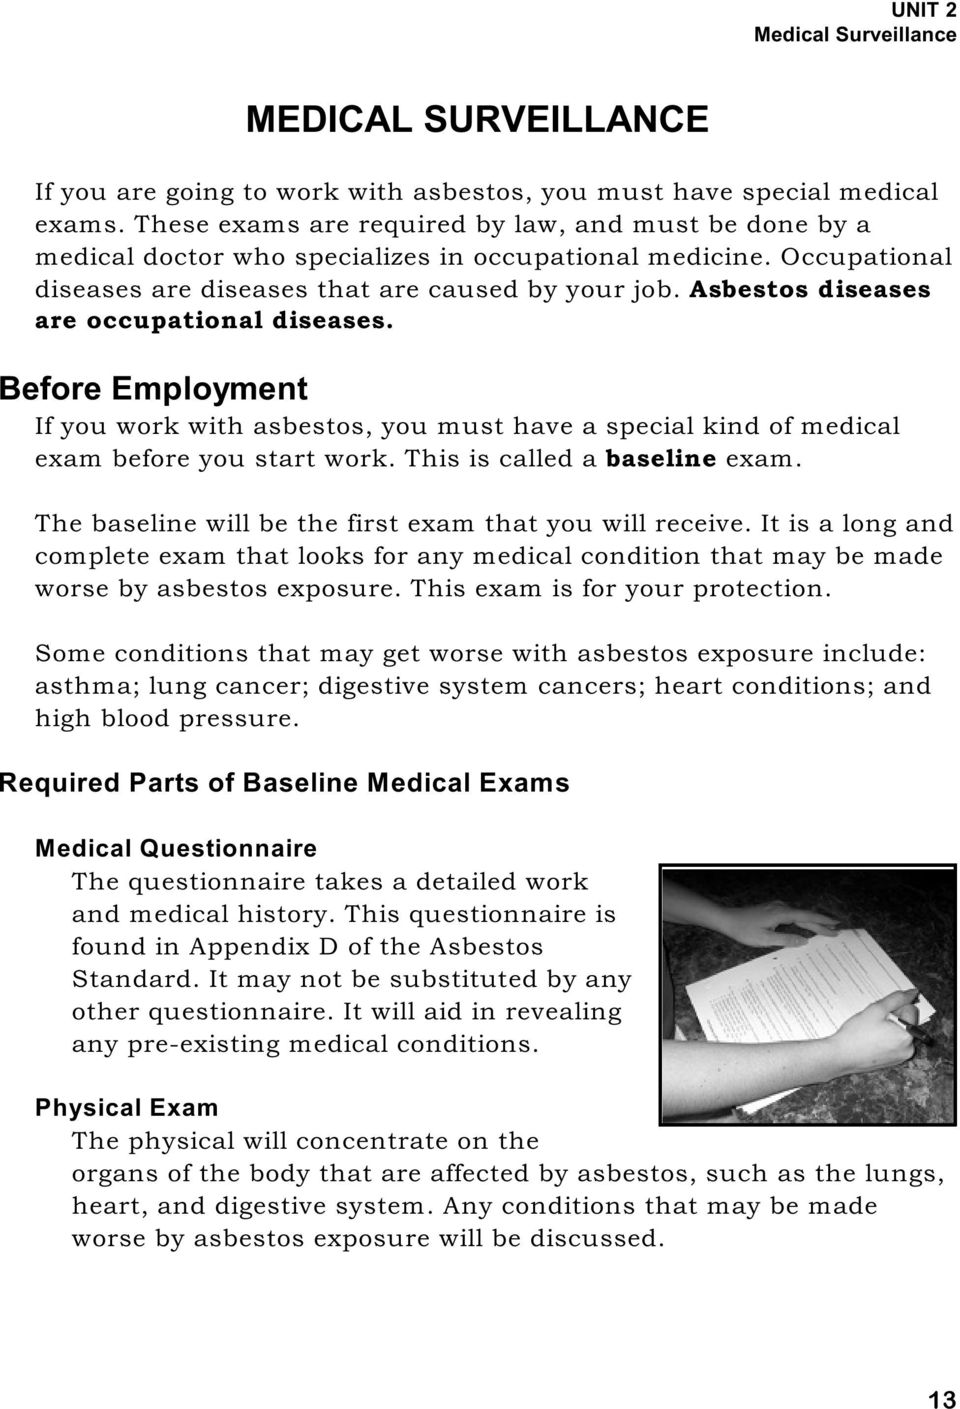 Asbestos diseases are occupational diseases. Before Employment If you work with asbestos, you must have a special kind of medical exam before you start work. This is called a baseline exam.